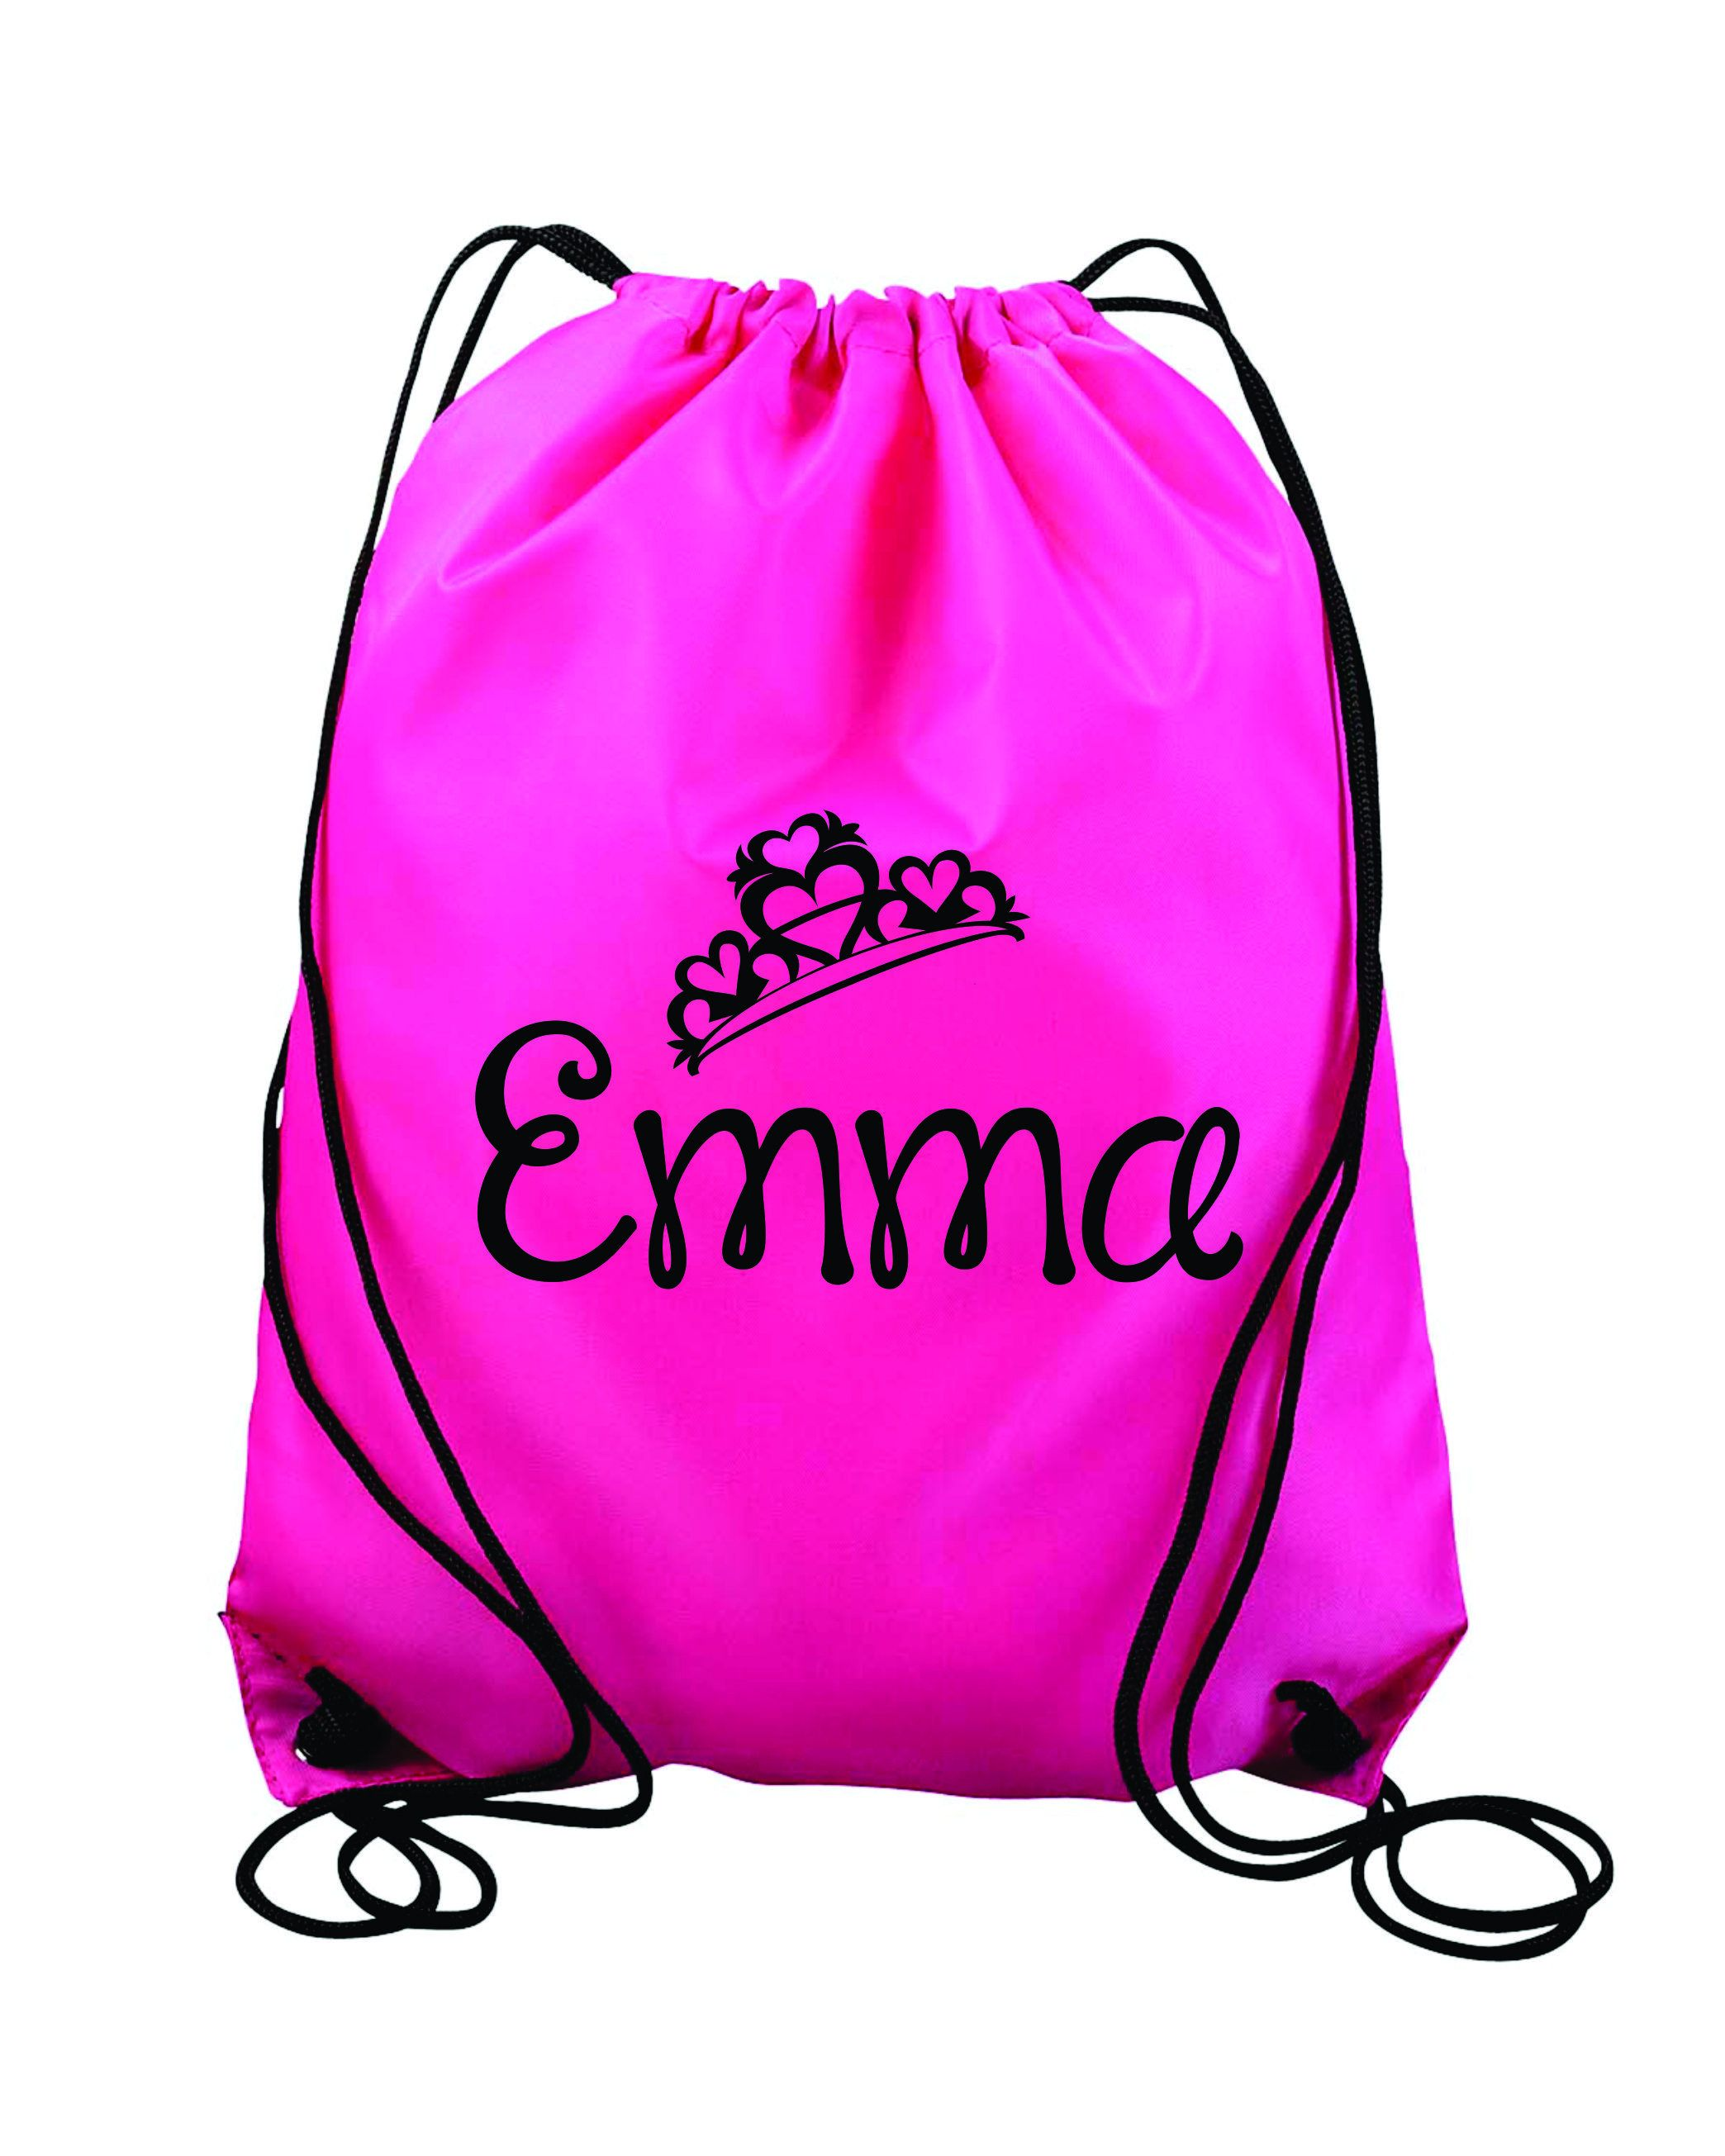 db257cc3284527 Princess Personalized Monogrammed- Kids drawstring bags, gym bags, backpacks,  , swimbag, sports bag. by 5MonkeysDesigns on Etsy